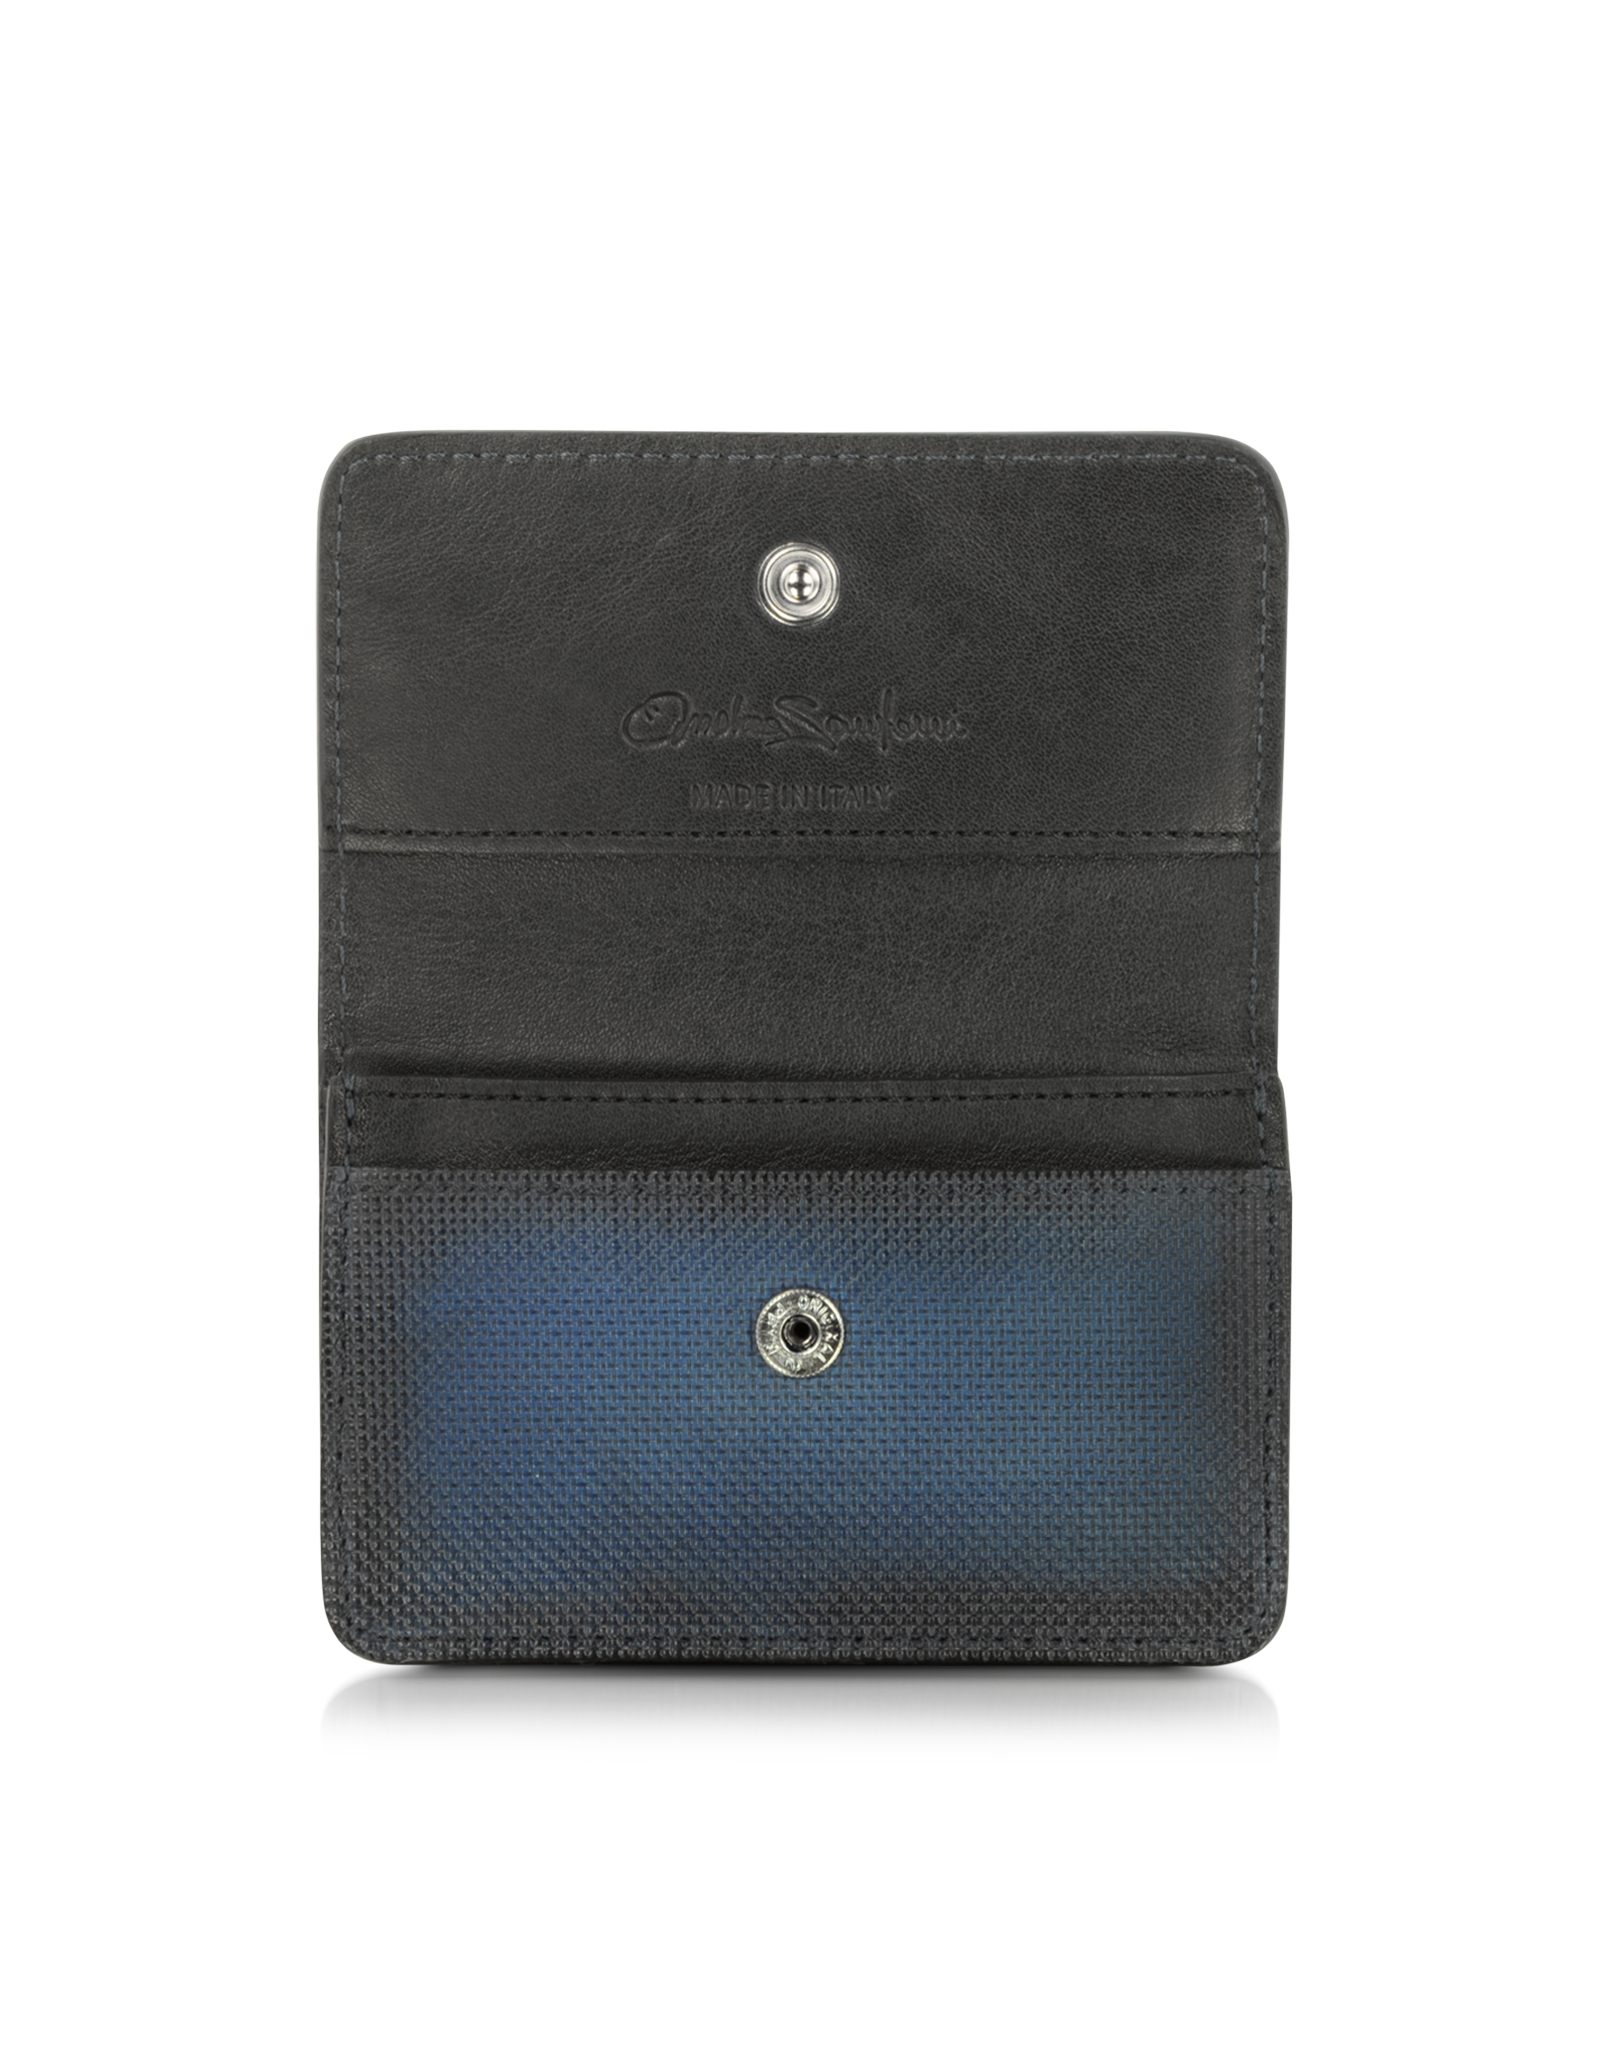 Lyst santoni blue leather business card holder in blue for men gallery colourmoves